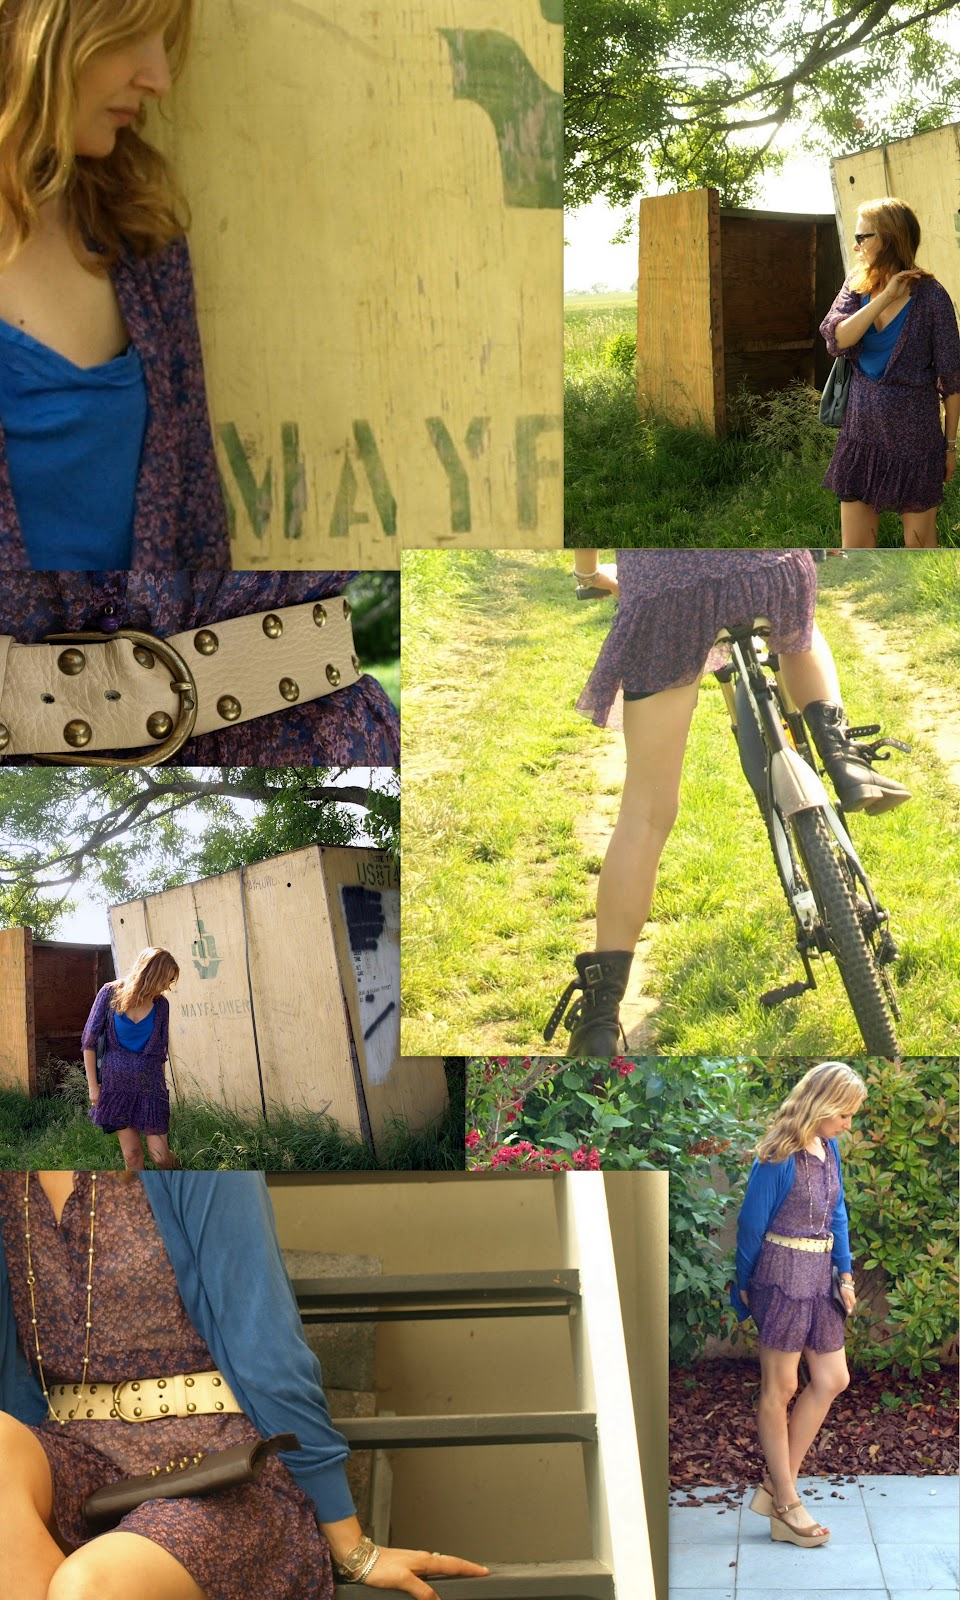 Floral dress, Floral dress and combat boots, biking in a dress